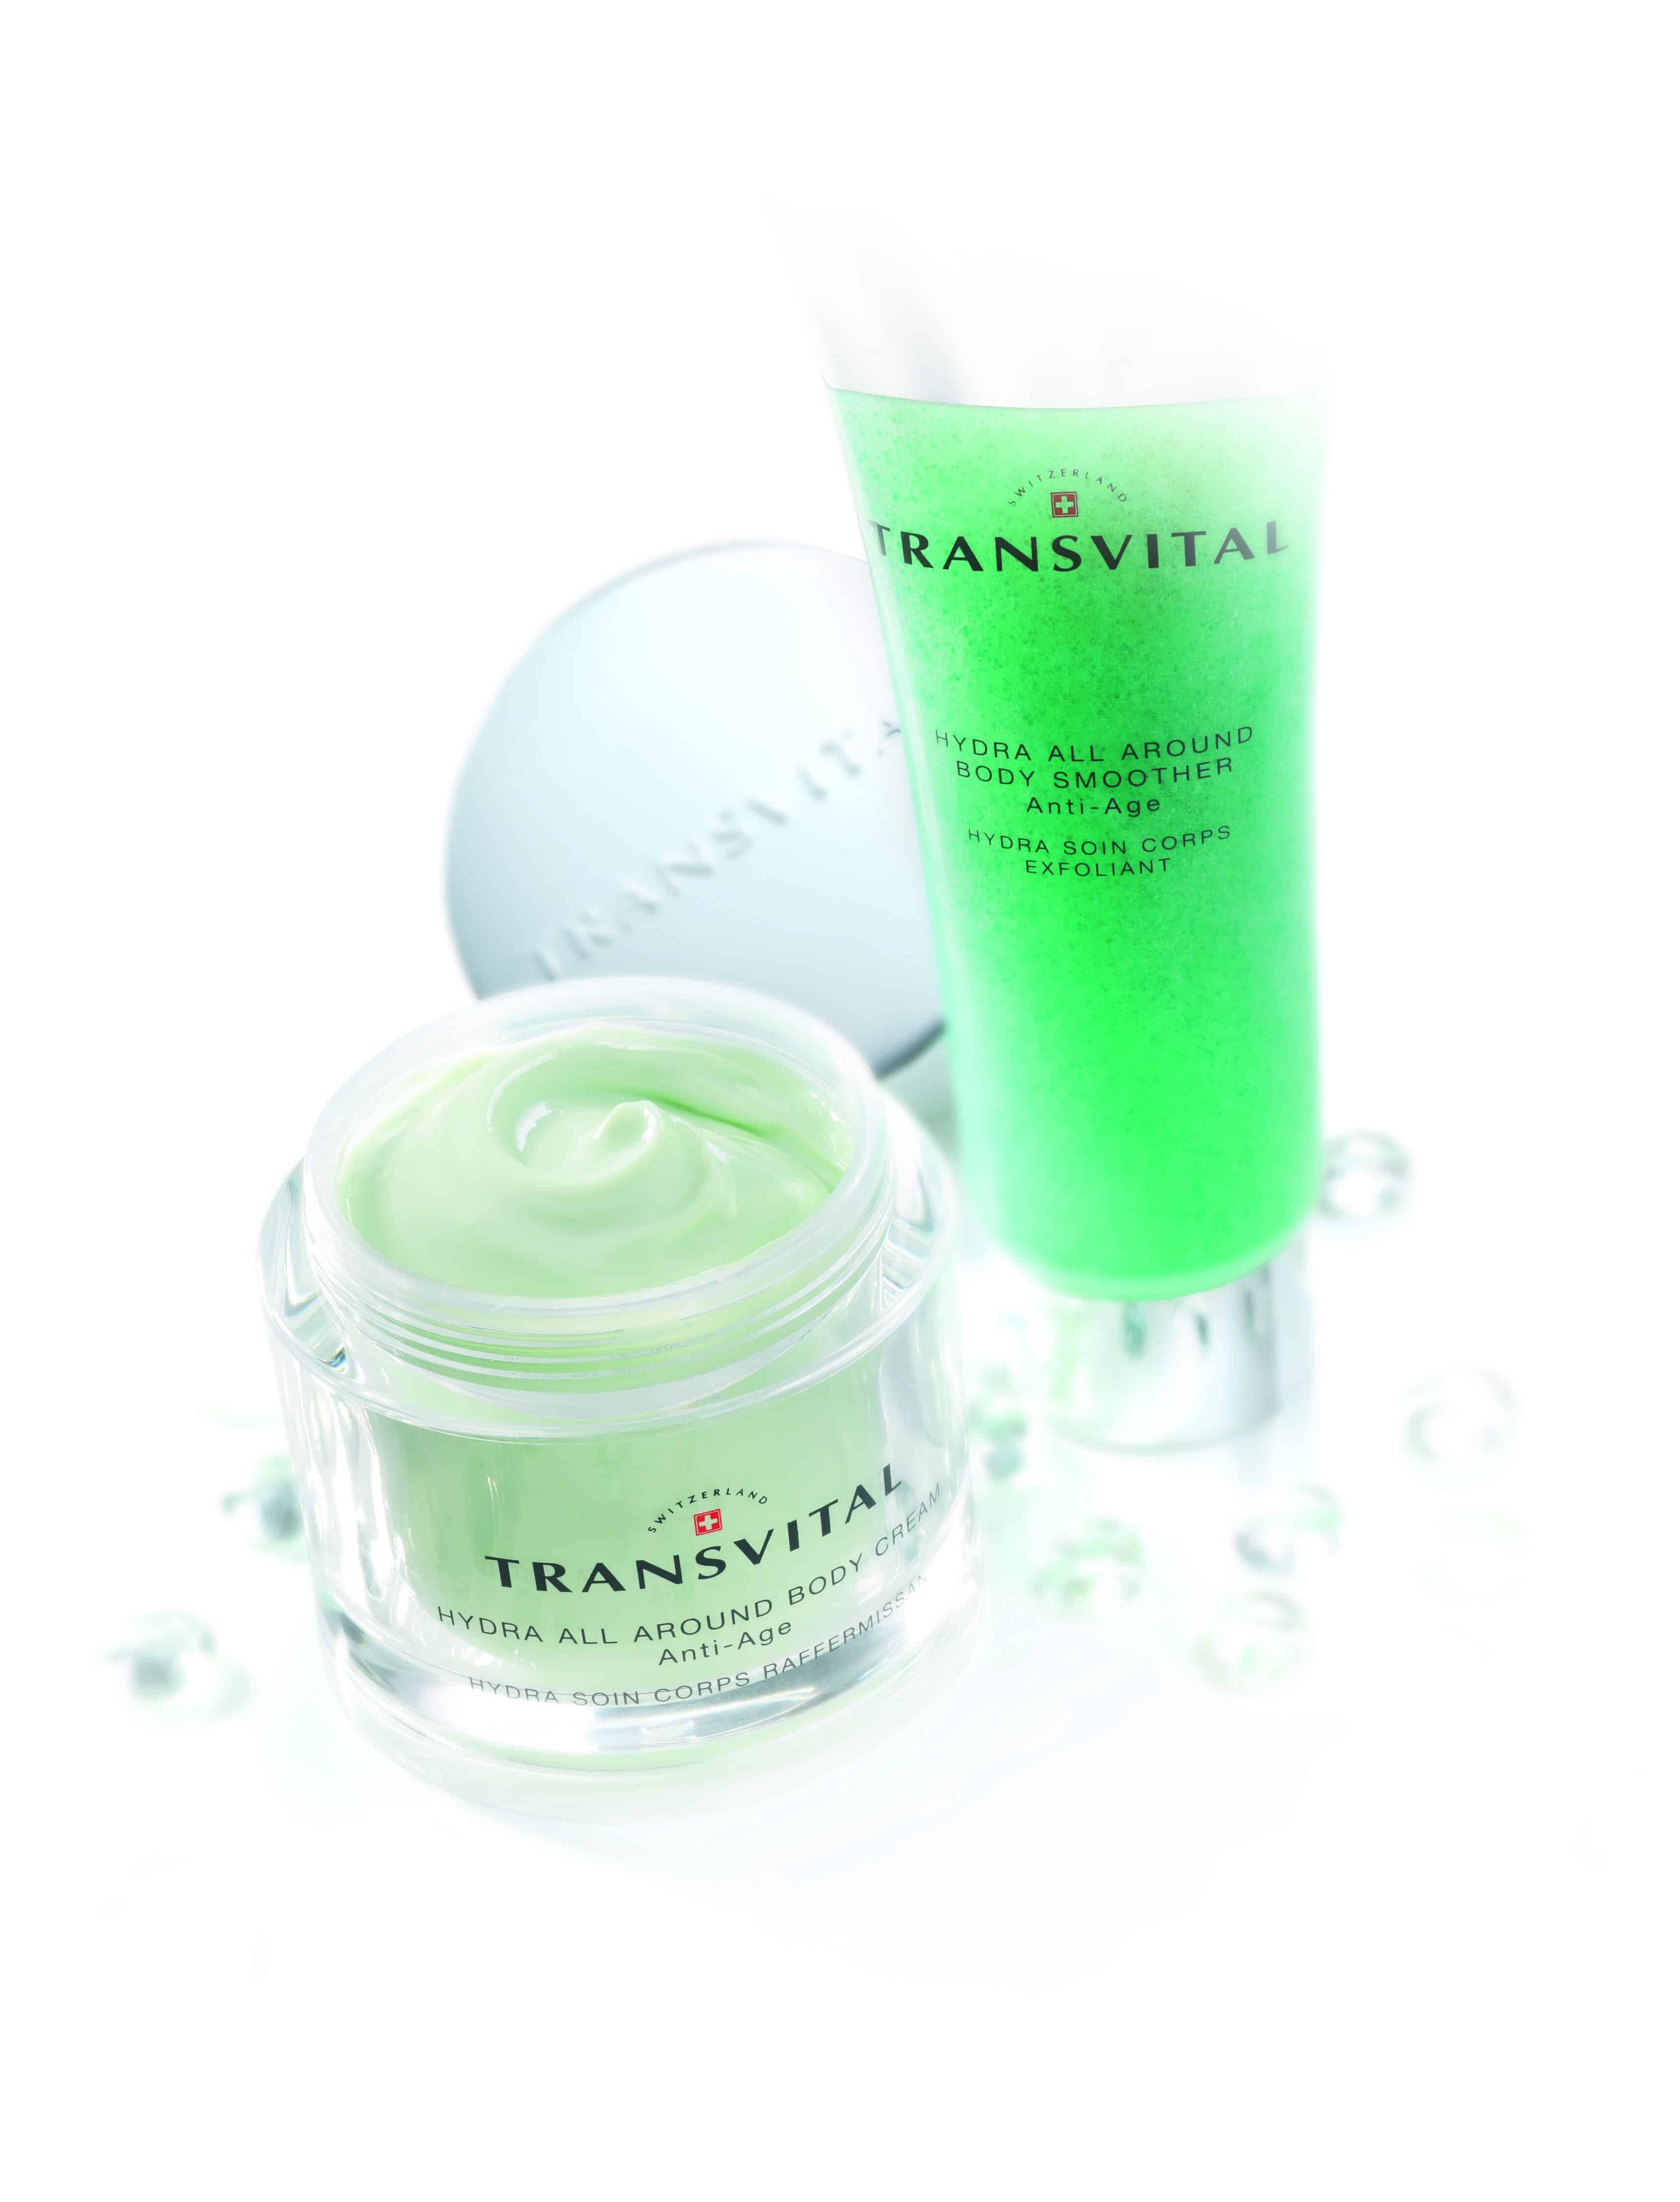 Hydra All Around Body Smoother & Hydra All Around Body Cream by Transvital